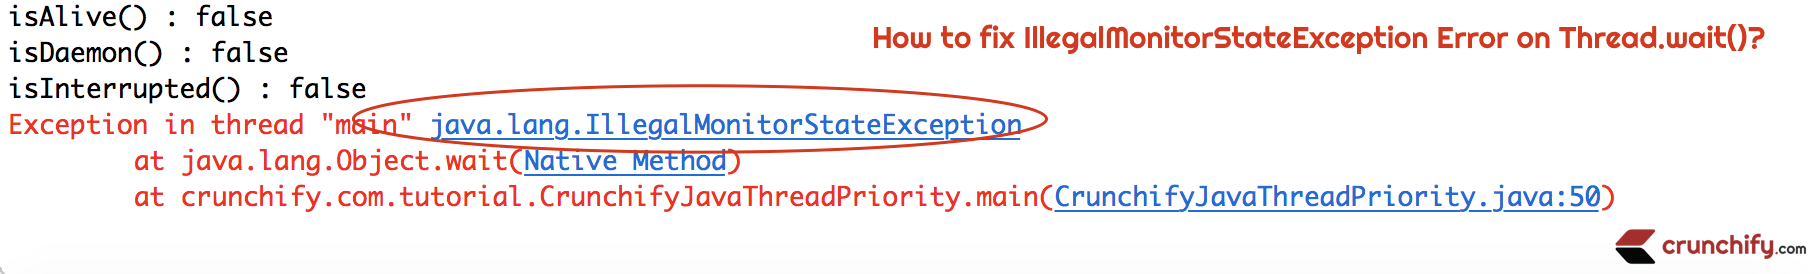 How to fix IllegalMonitorStateException Error on Thread.wait()